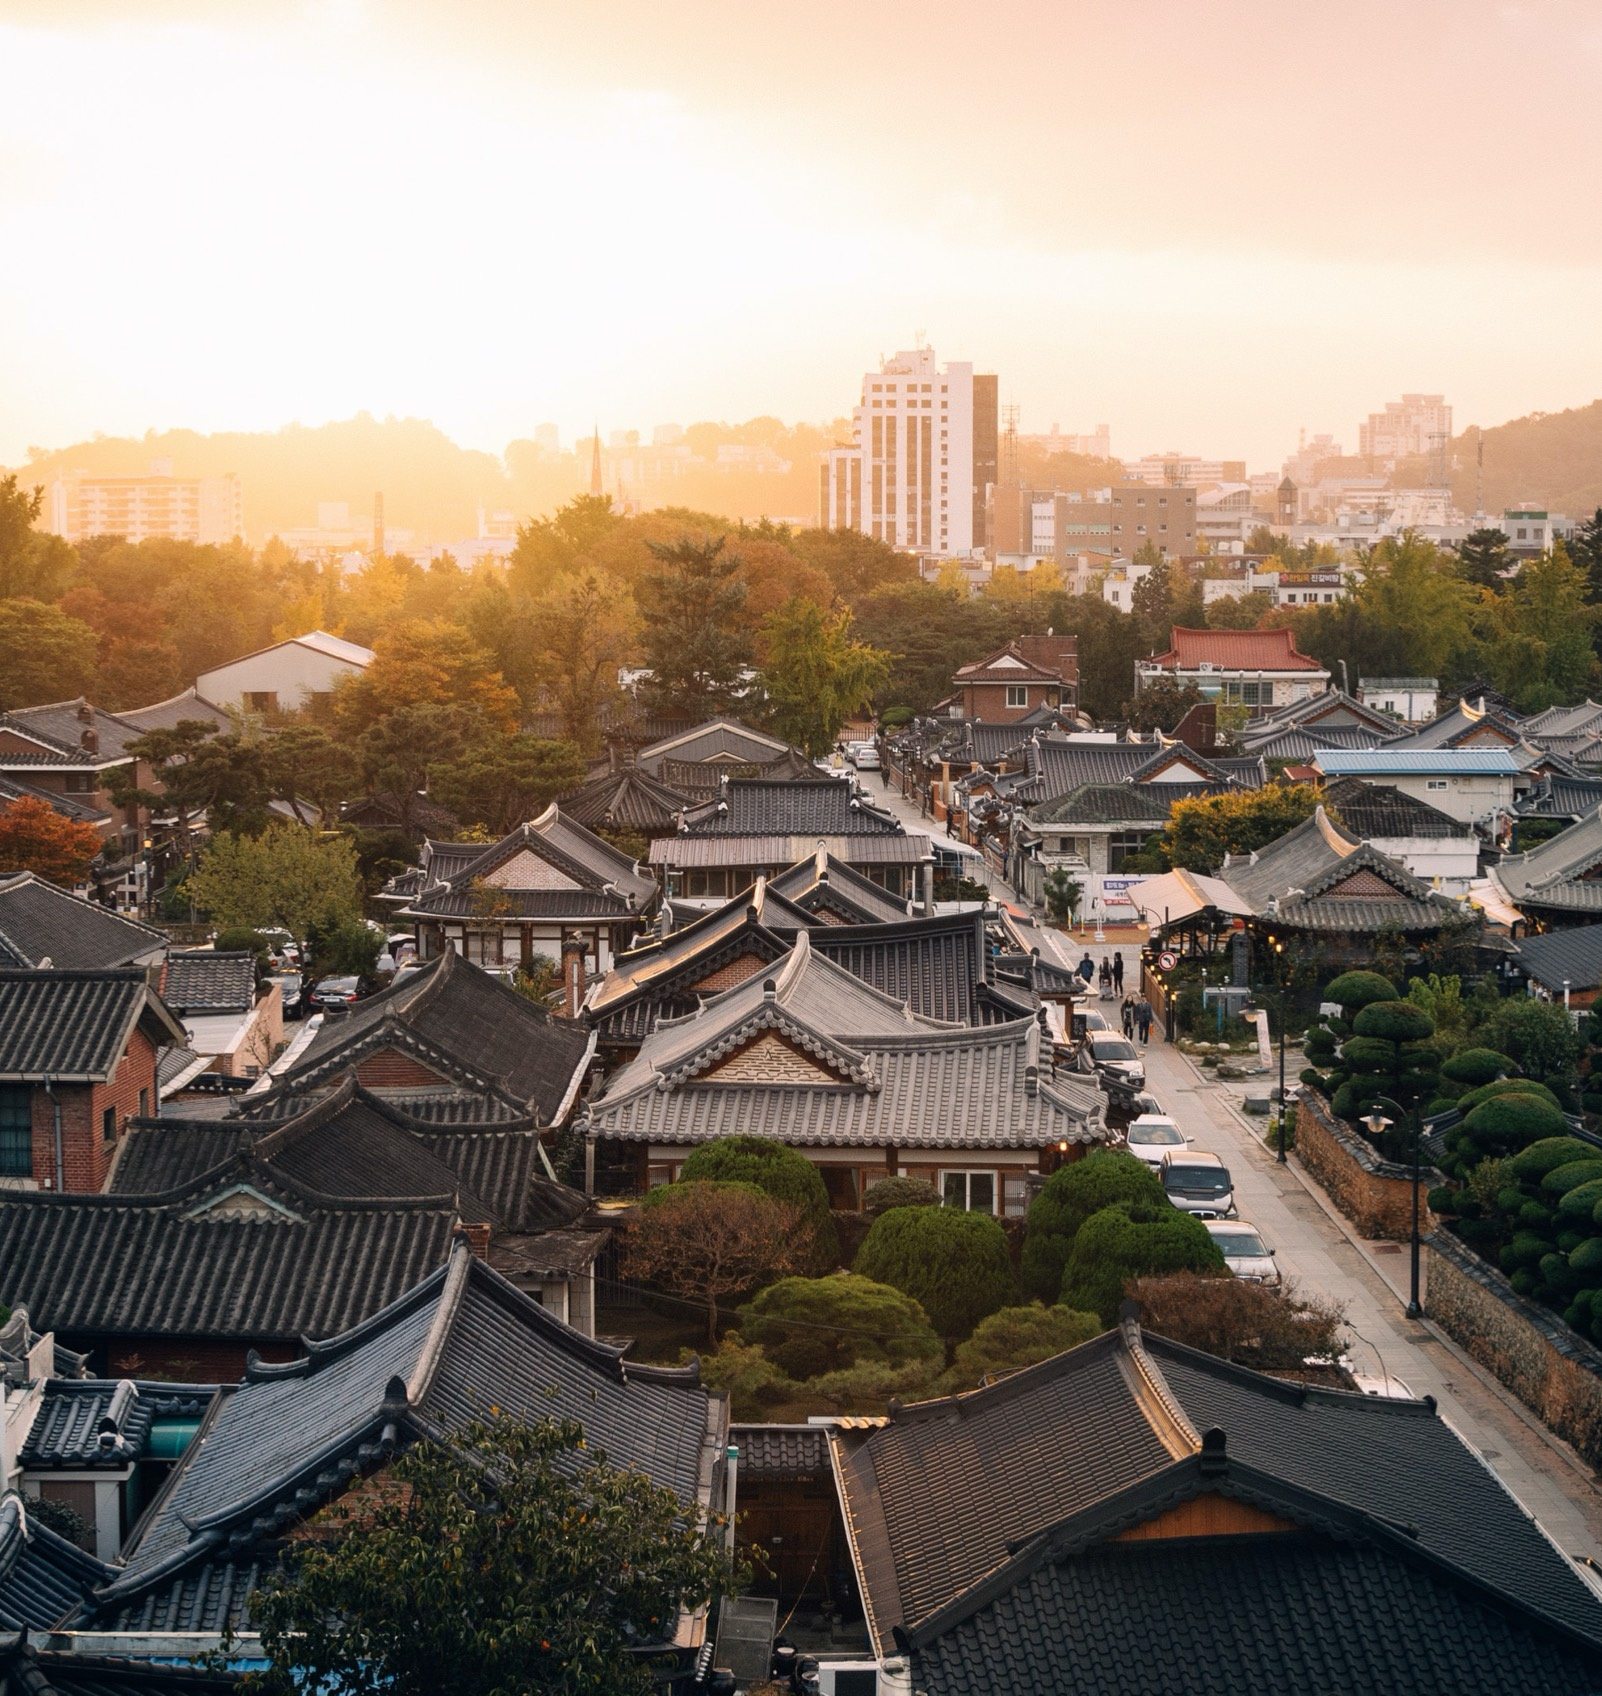 Picture of a City in South Korea